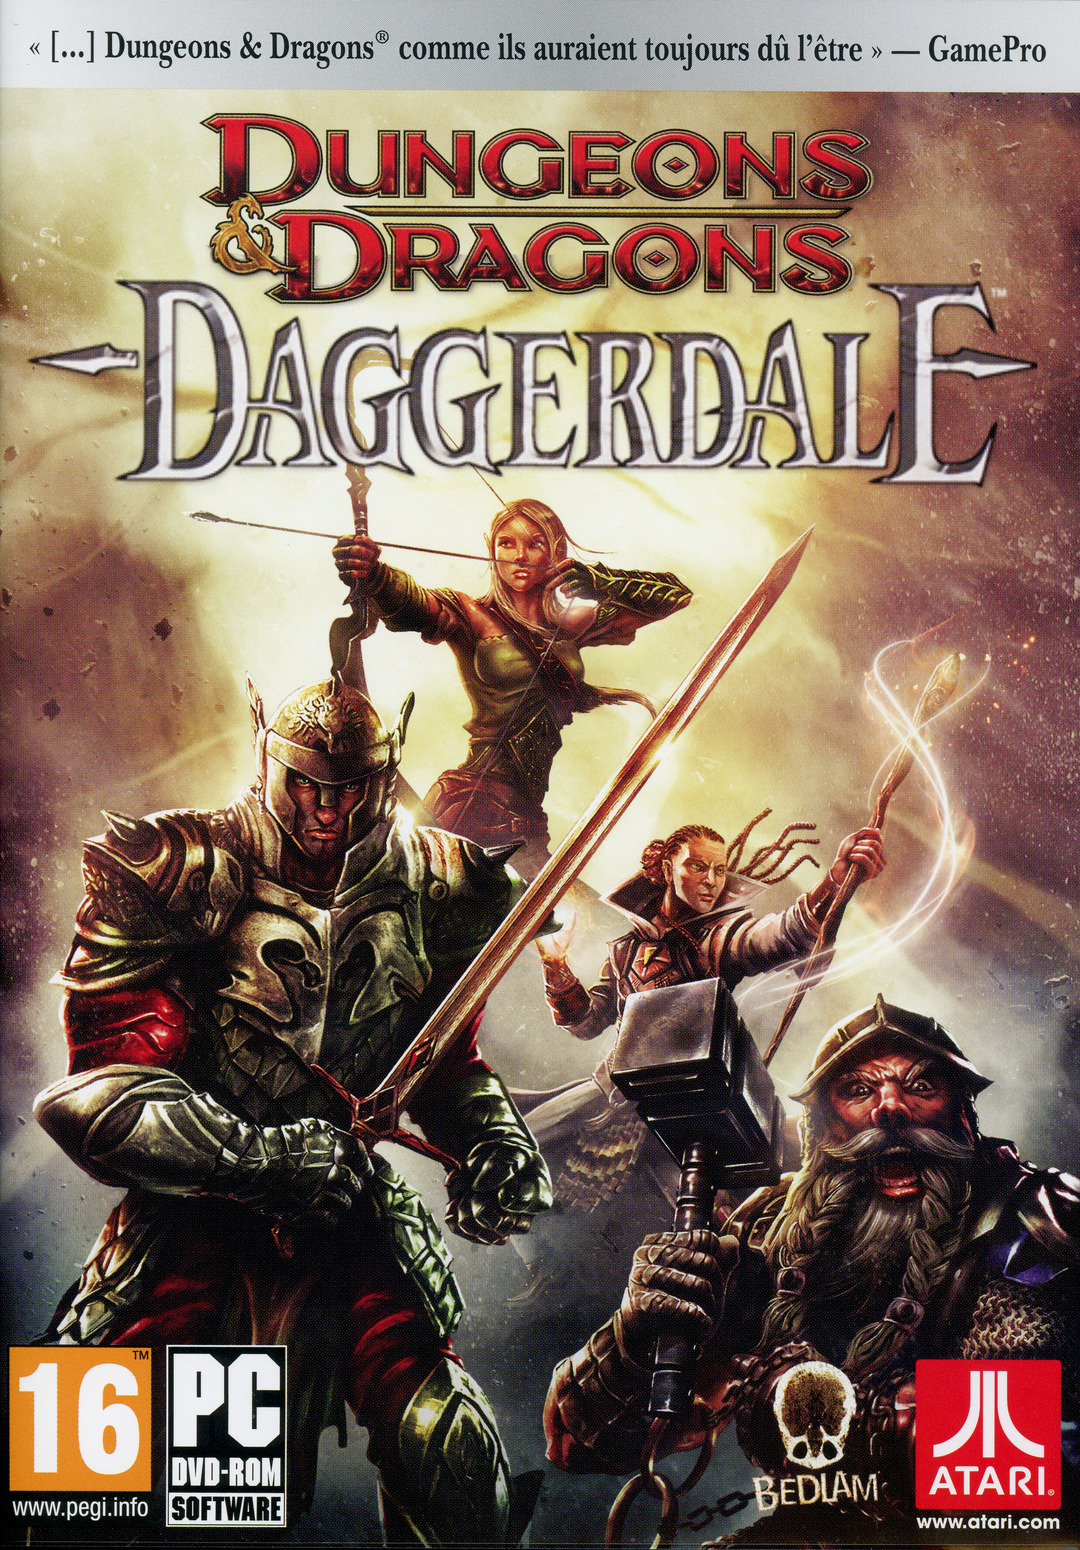 Pc Daggerdale Dragons Dungeons And